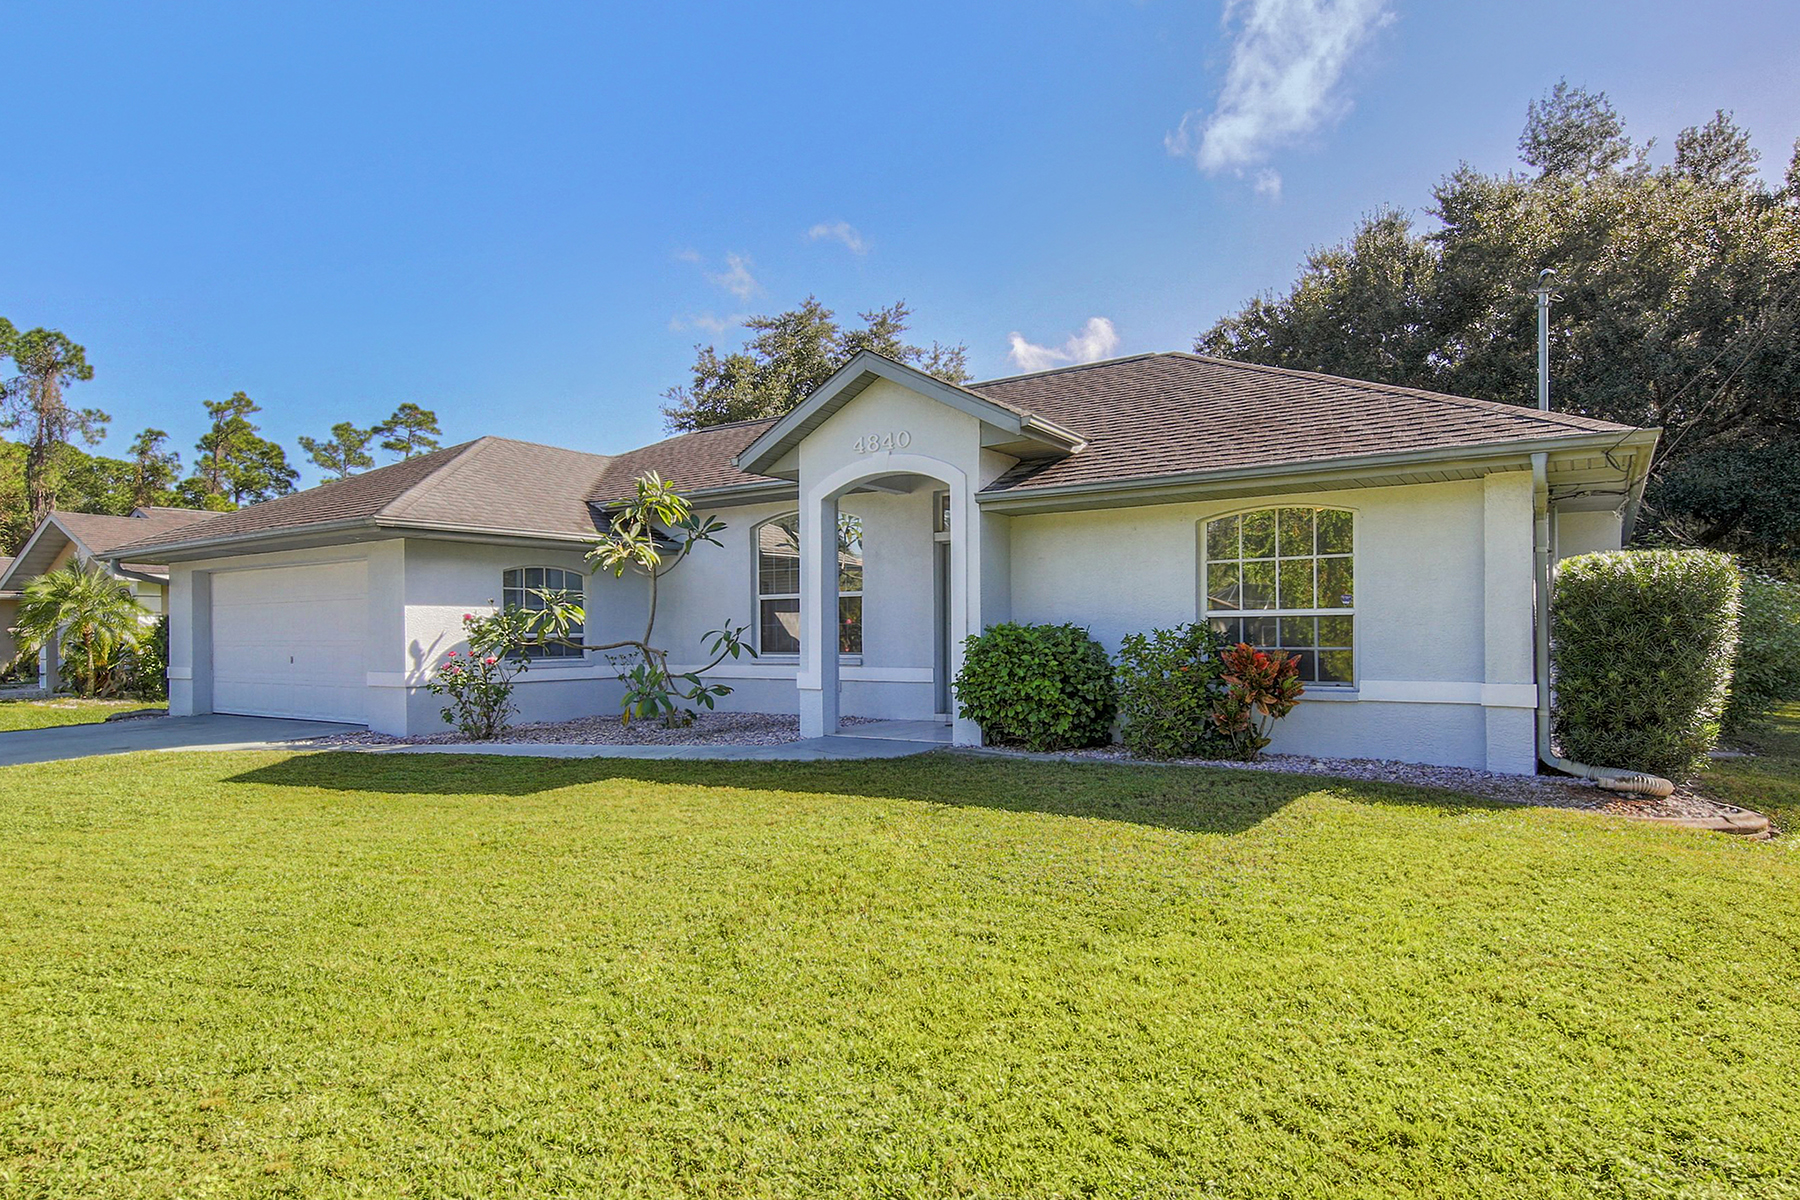 Single Family Home for Sale at NORTH PORT 4840 Alametos Terr North Port, Florida, 34288 United States